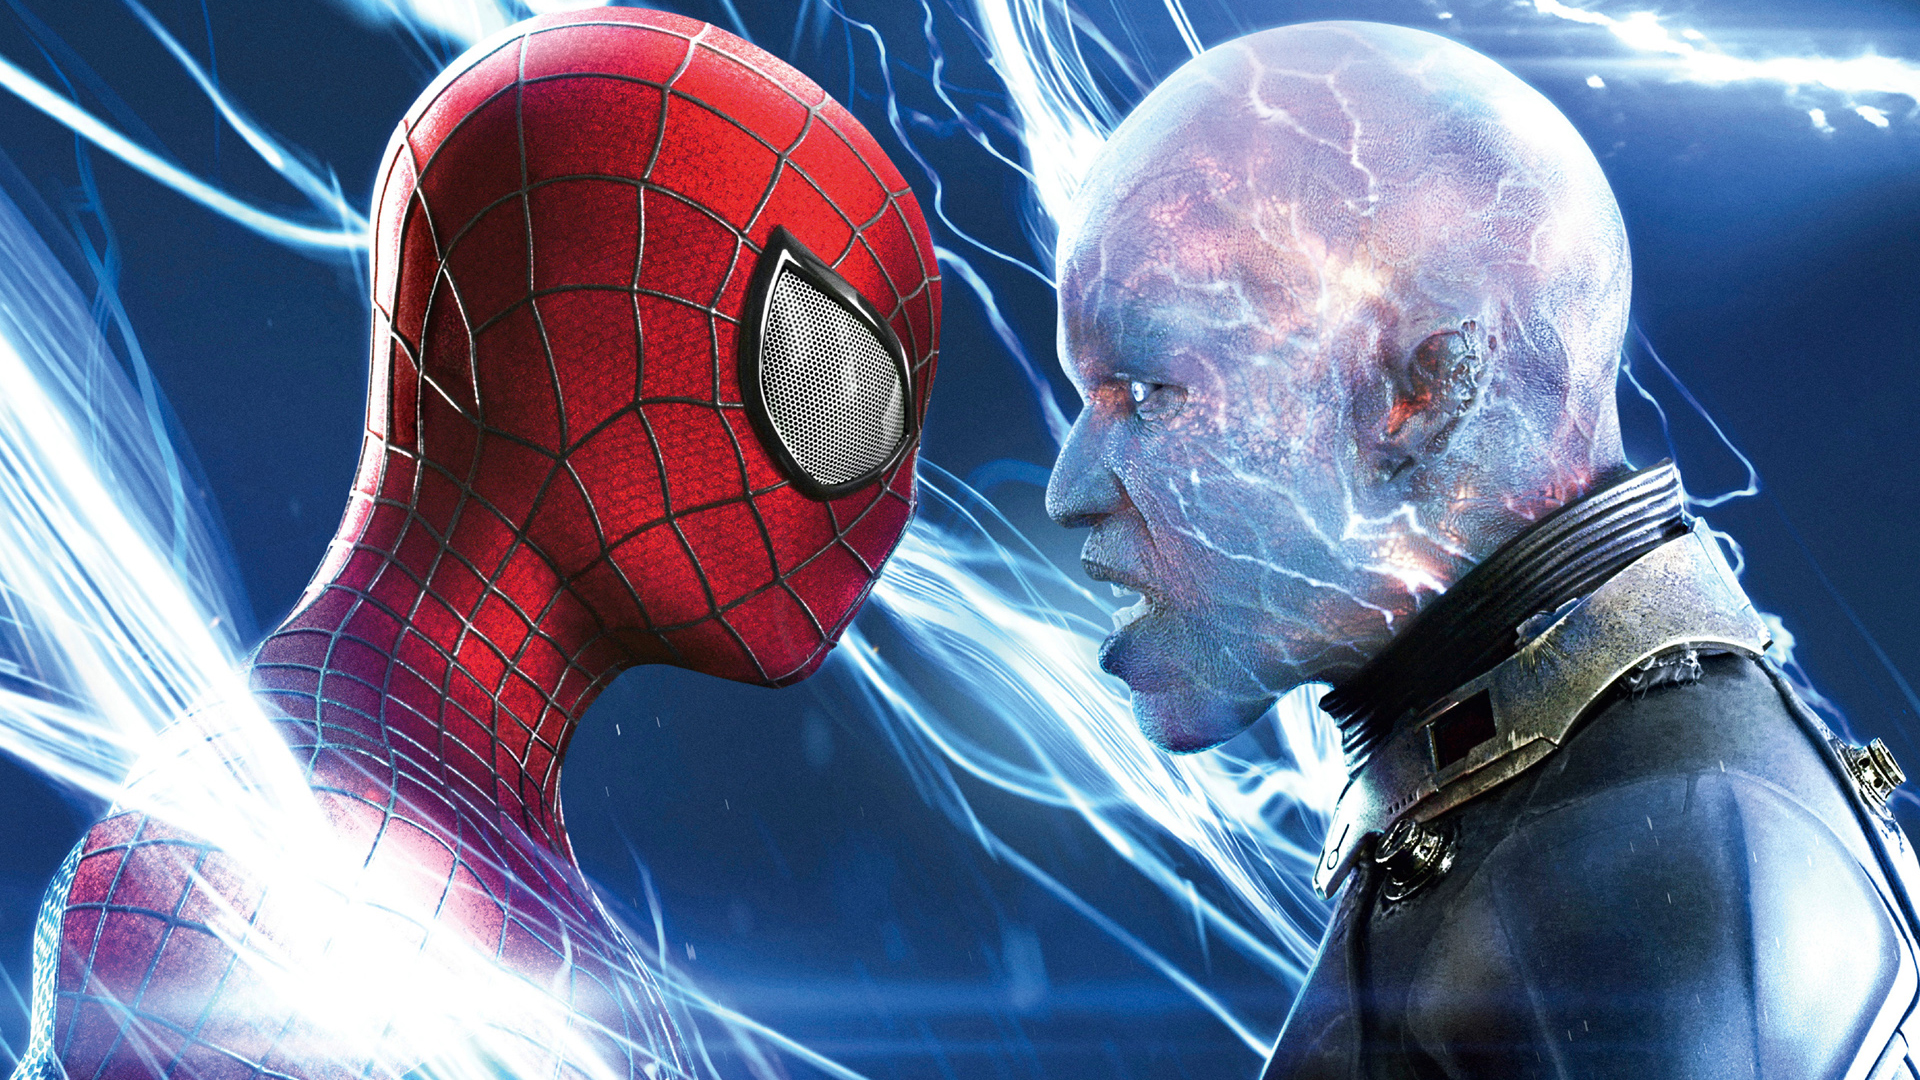 Electro and Spider Man 1v Wallpaper HD